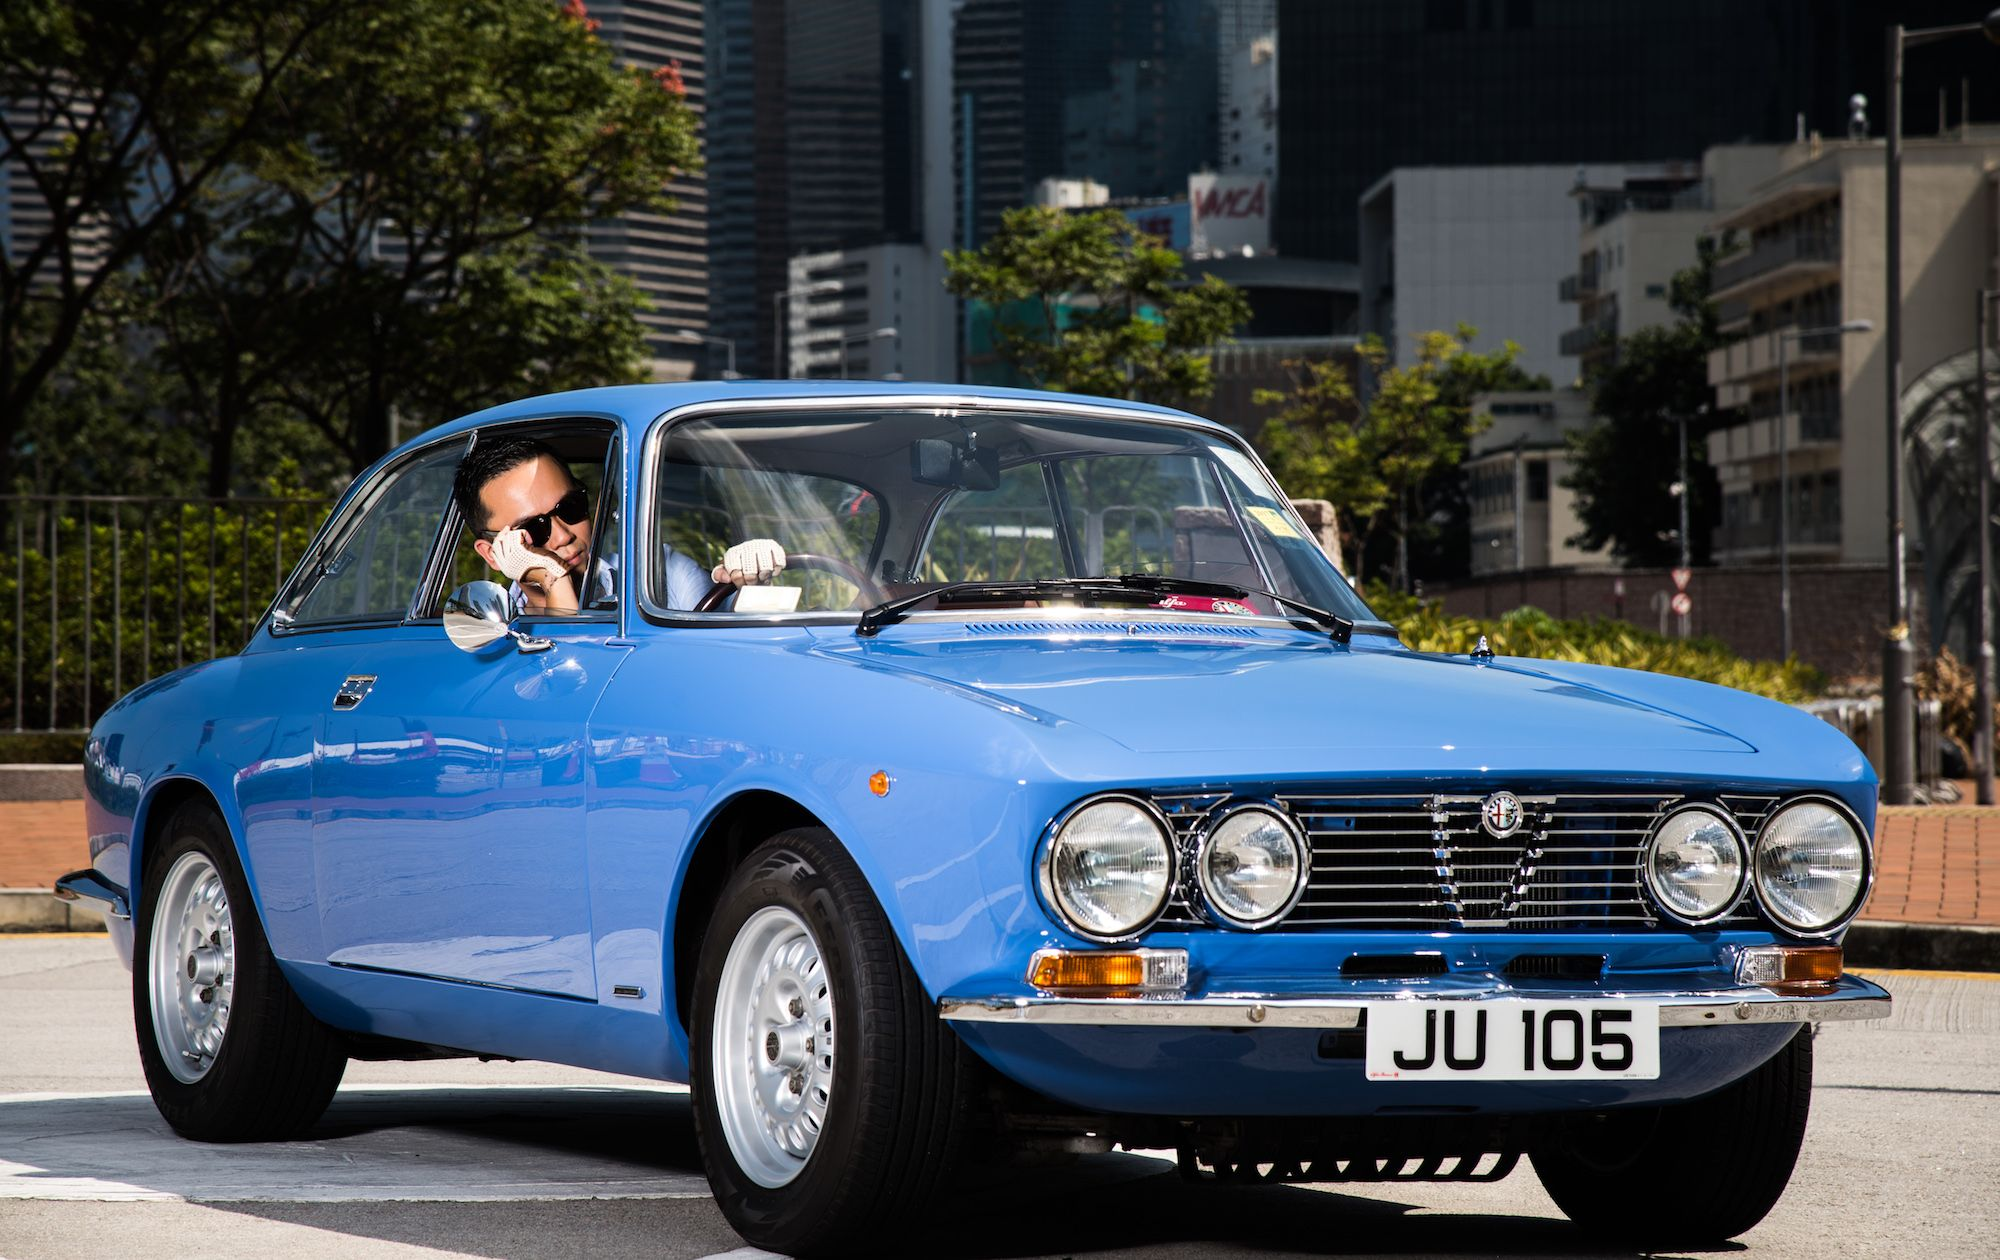 Car Talk Justin Lui On The Chater Road Classic Car Show Hong Kong